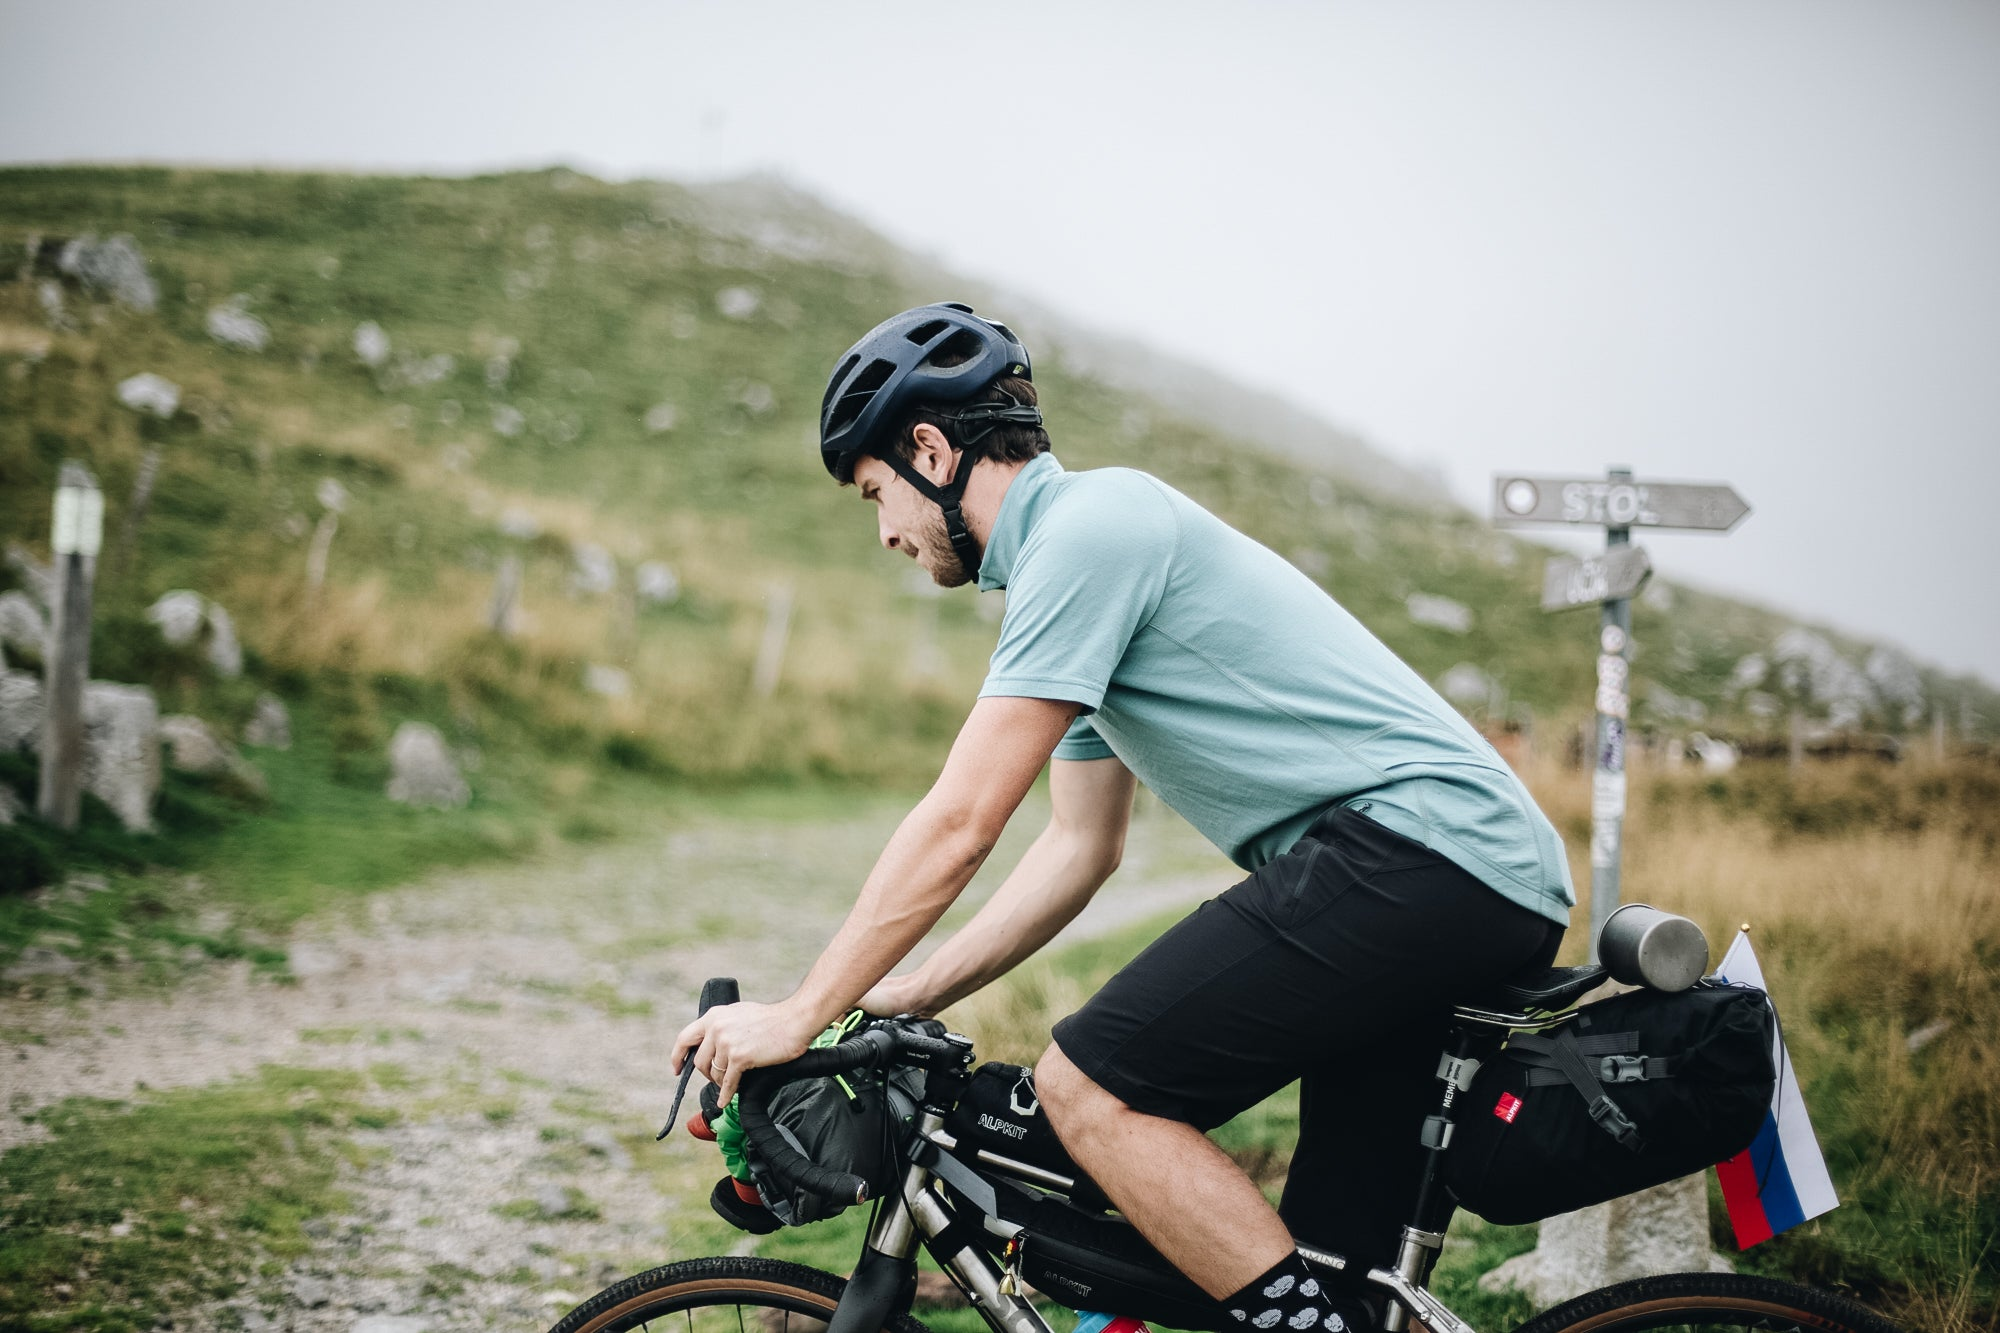 Man cycle touring on a gravel track in Slovenia, wearing a merino wool cycling jersey